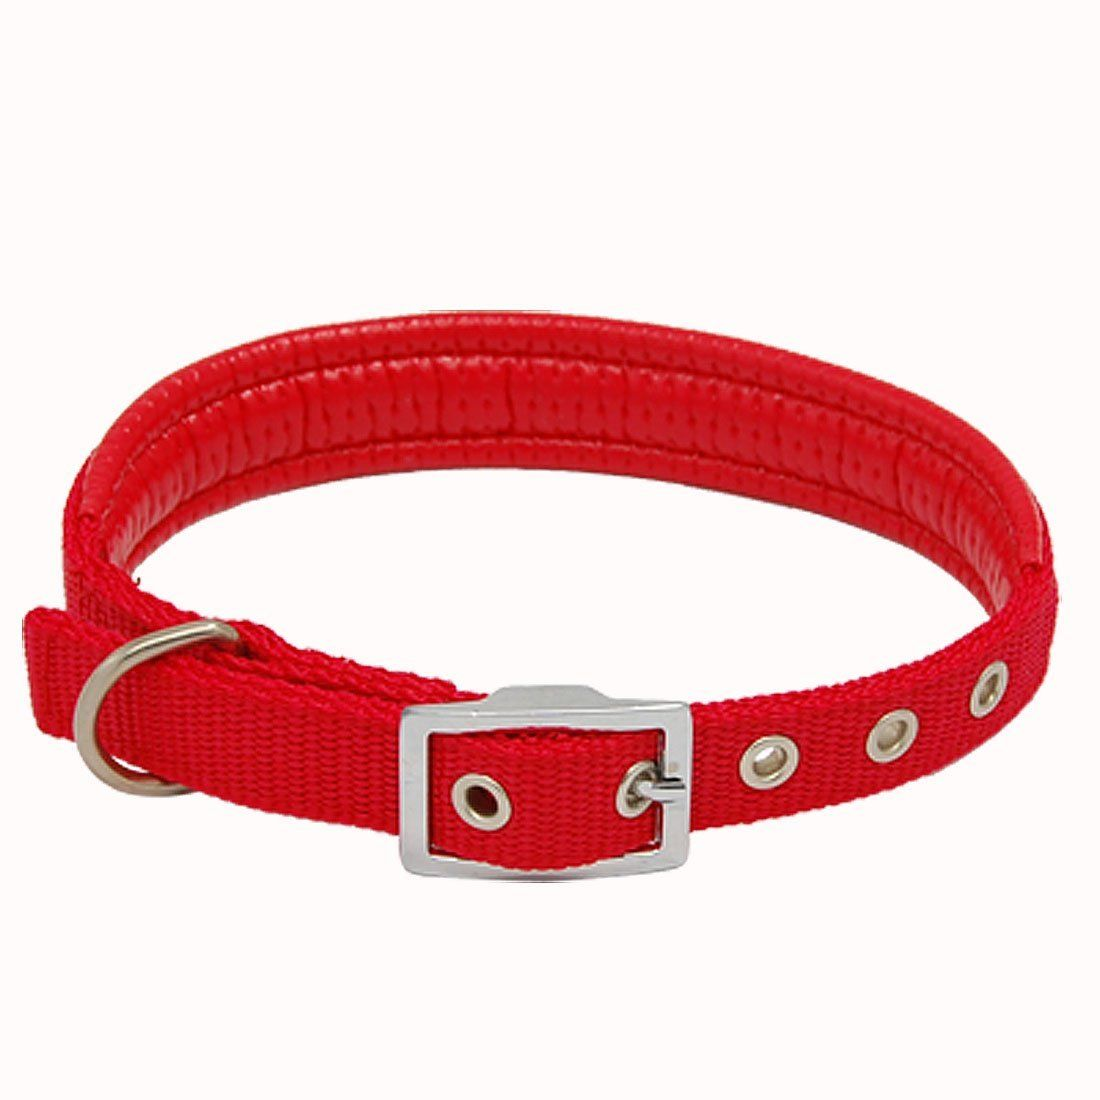 Jardin Dog Pet Neck Collar Faux Leather Band Strap Red With Buckle